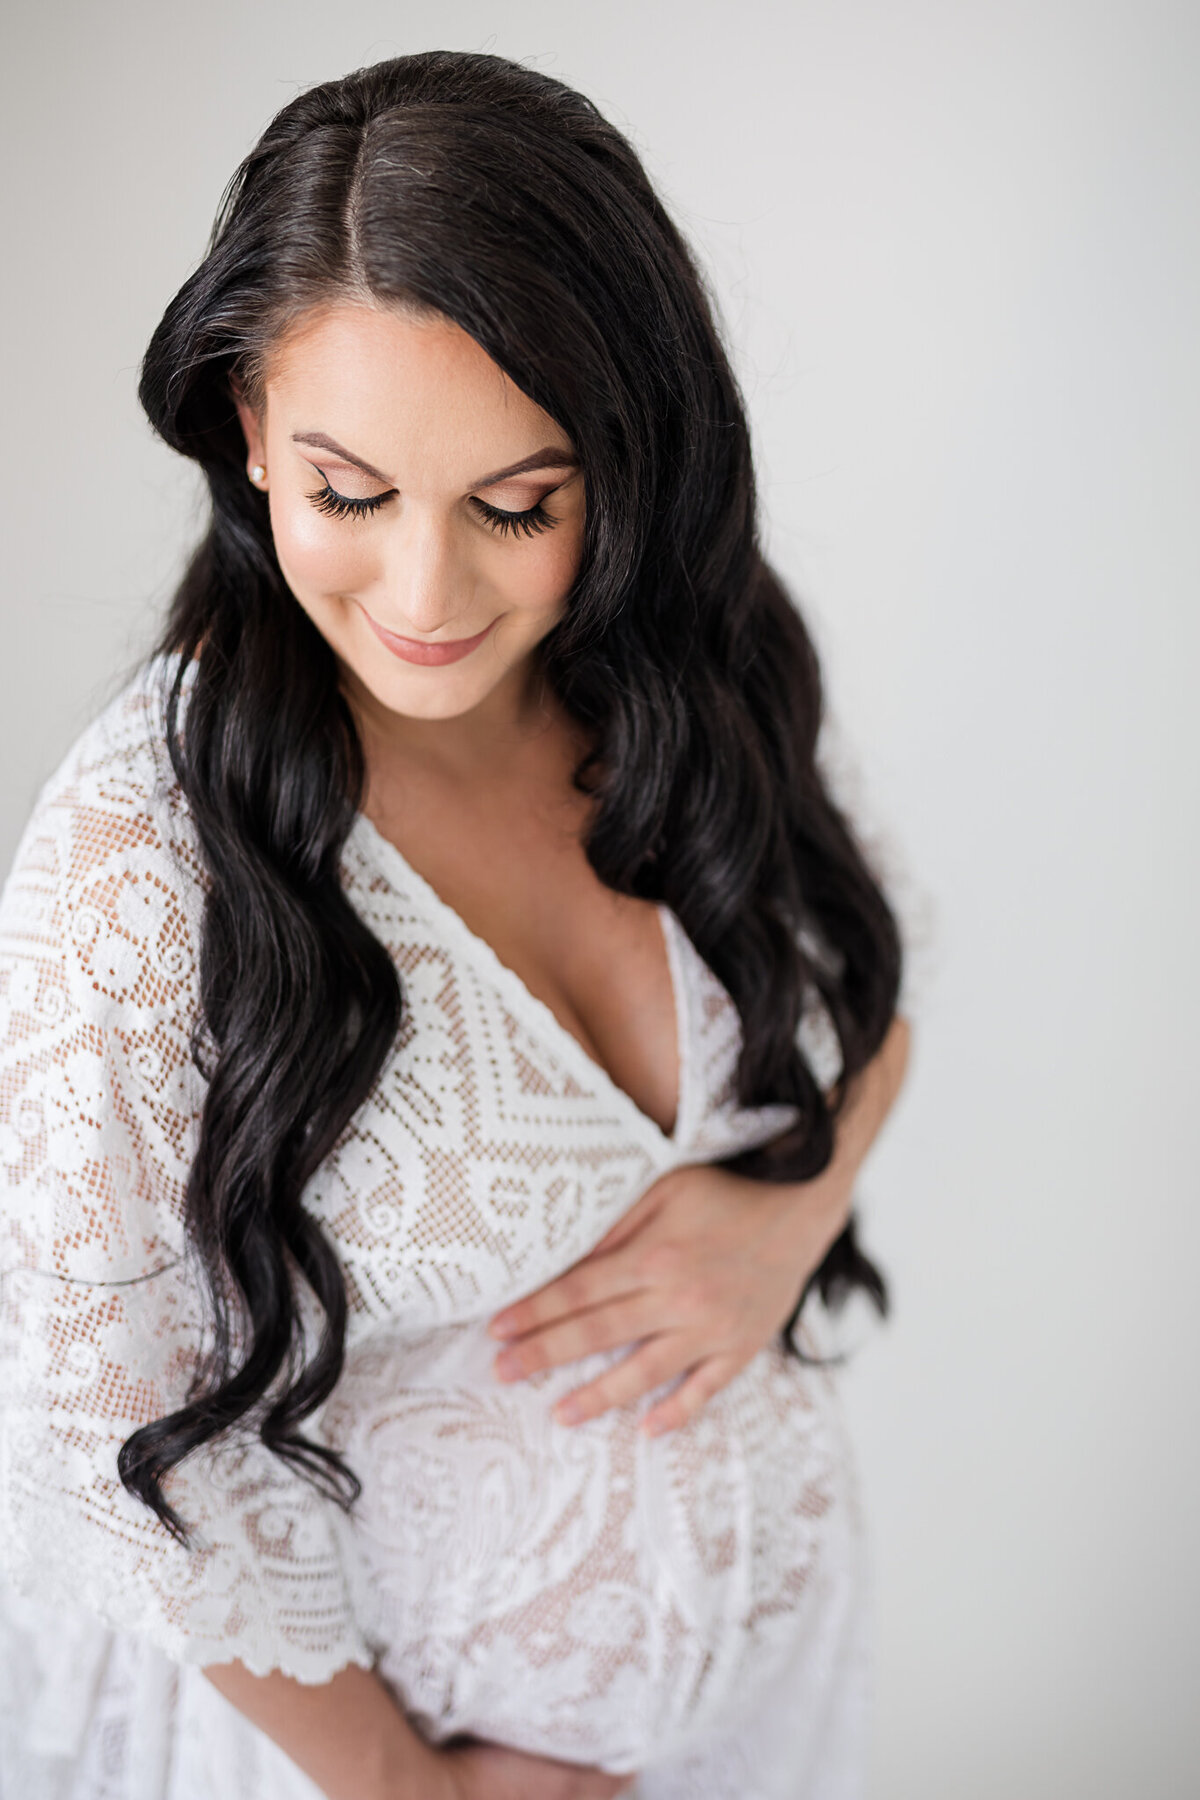 best orlando maternity photos